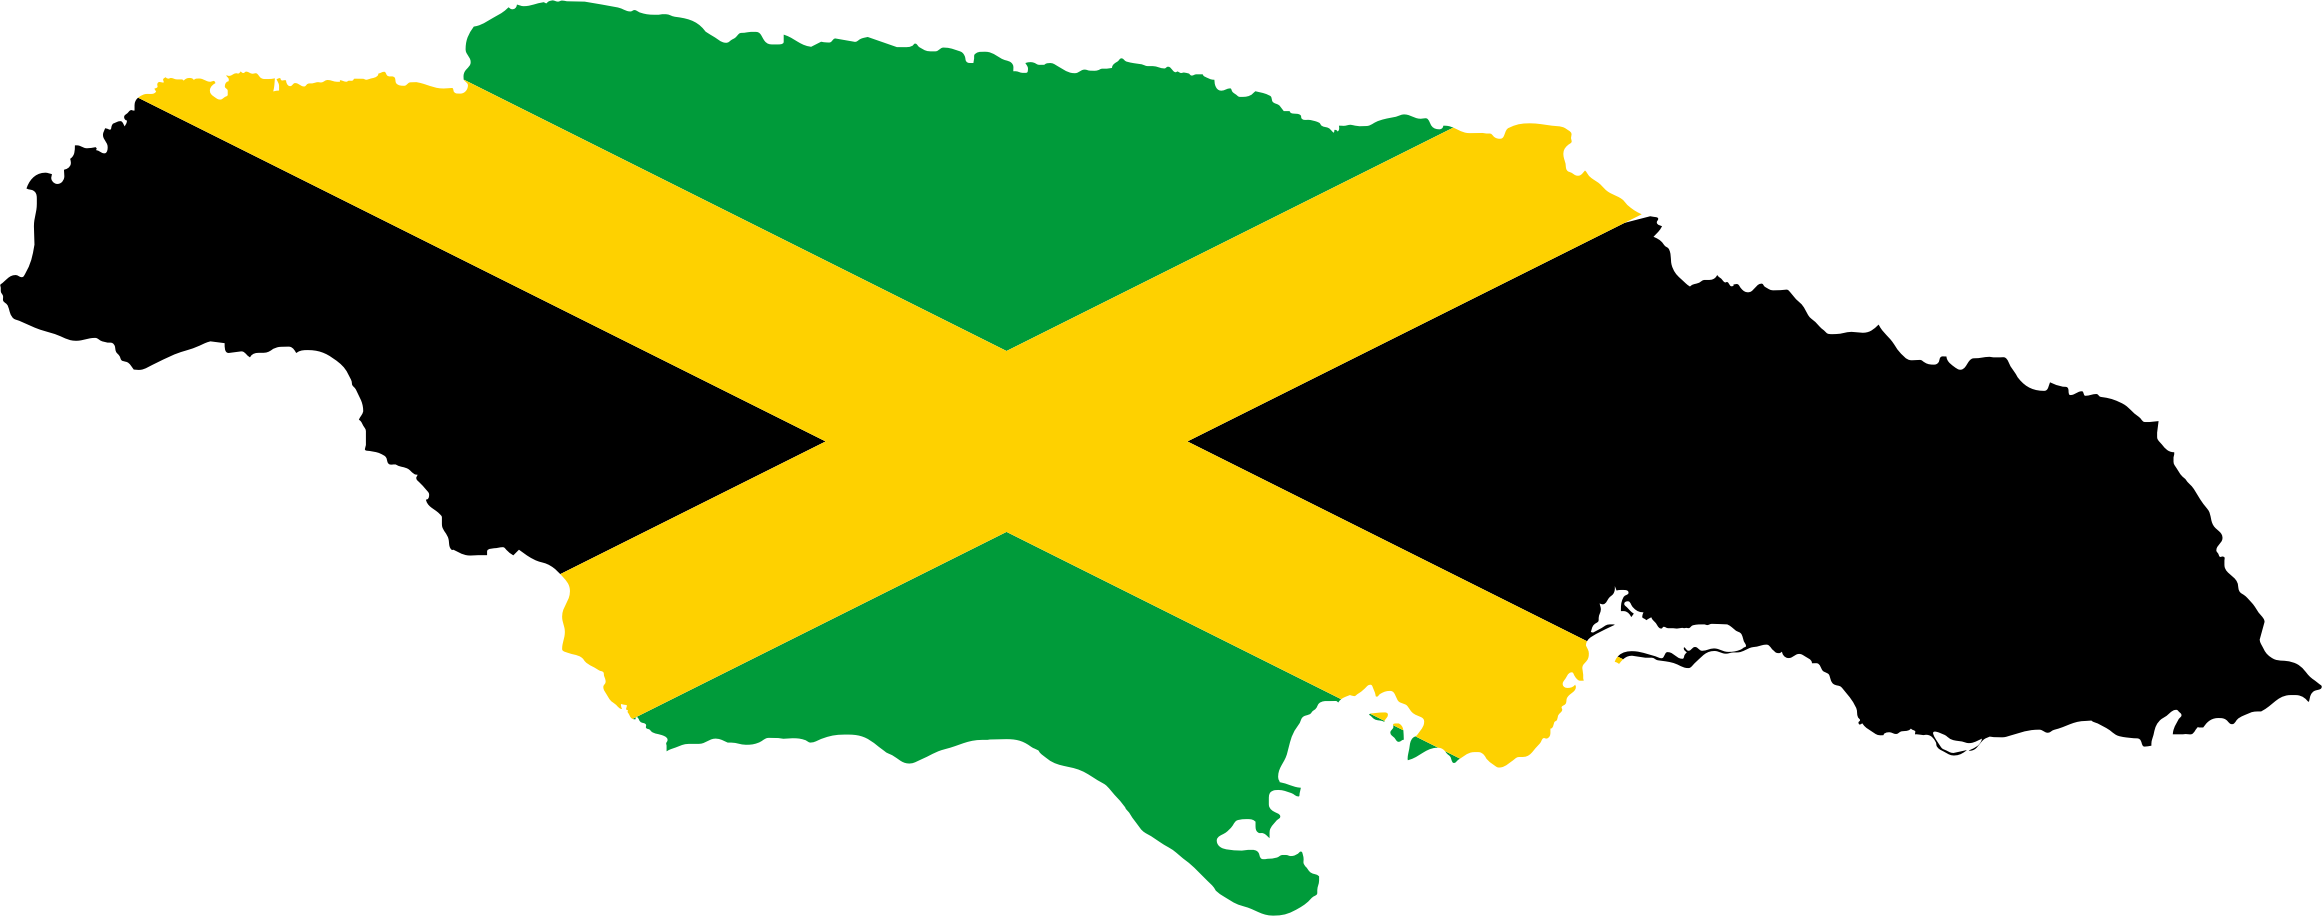 Waving jamaica flag clipart black and white Free Jamaican Flag Cliparts, Download Free Clip Art, Free ... black and white